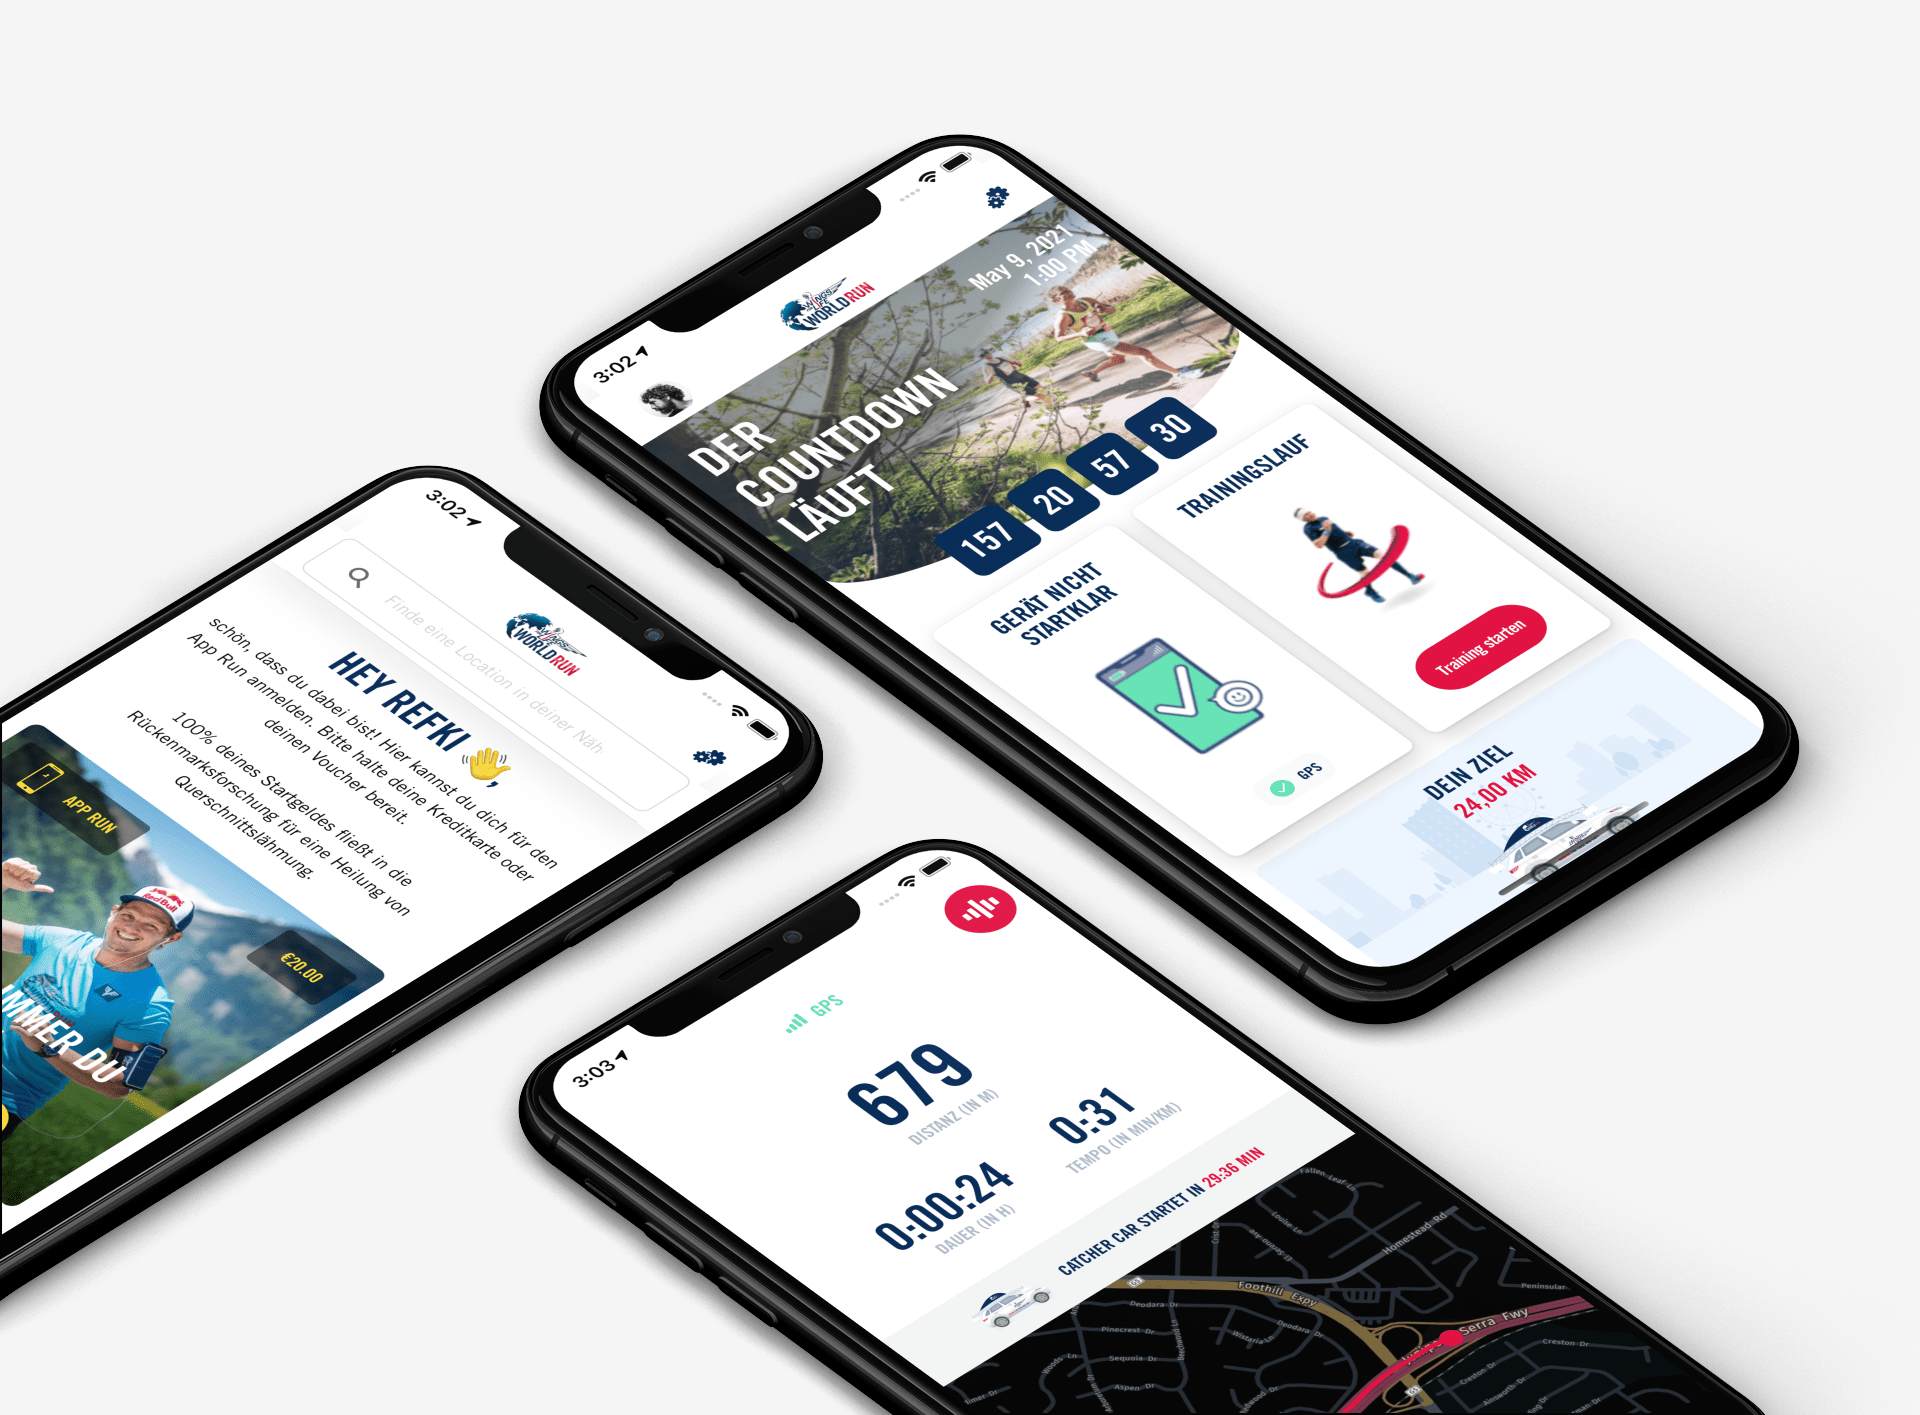 App Entwicklung von IRTECH - Wings for Life World Run App